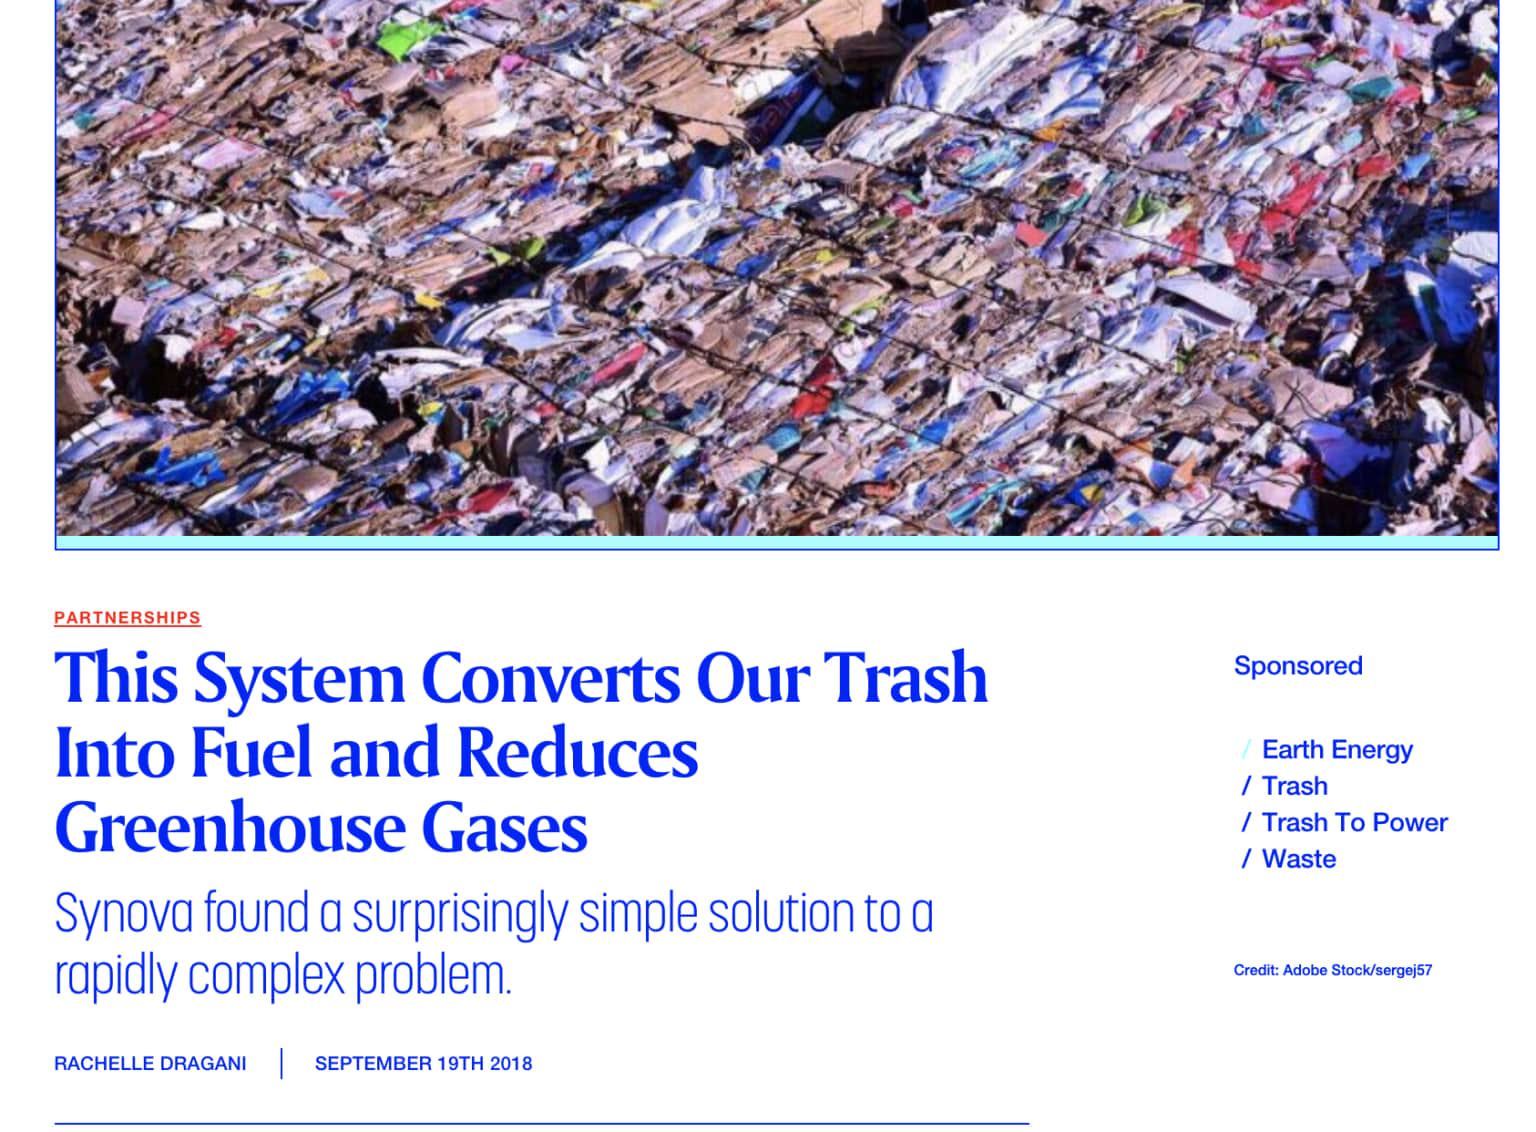 This System Converts Our Trash Into Fuel and Reduces Greenhouse Gases